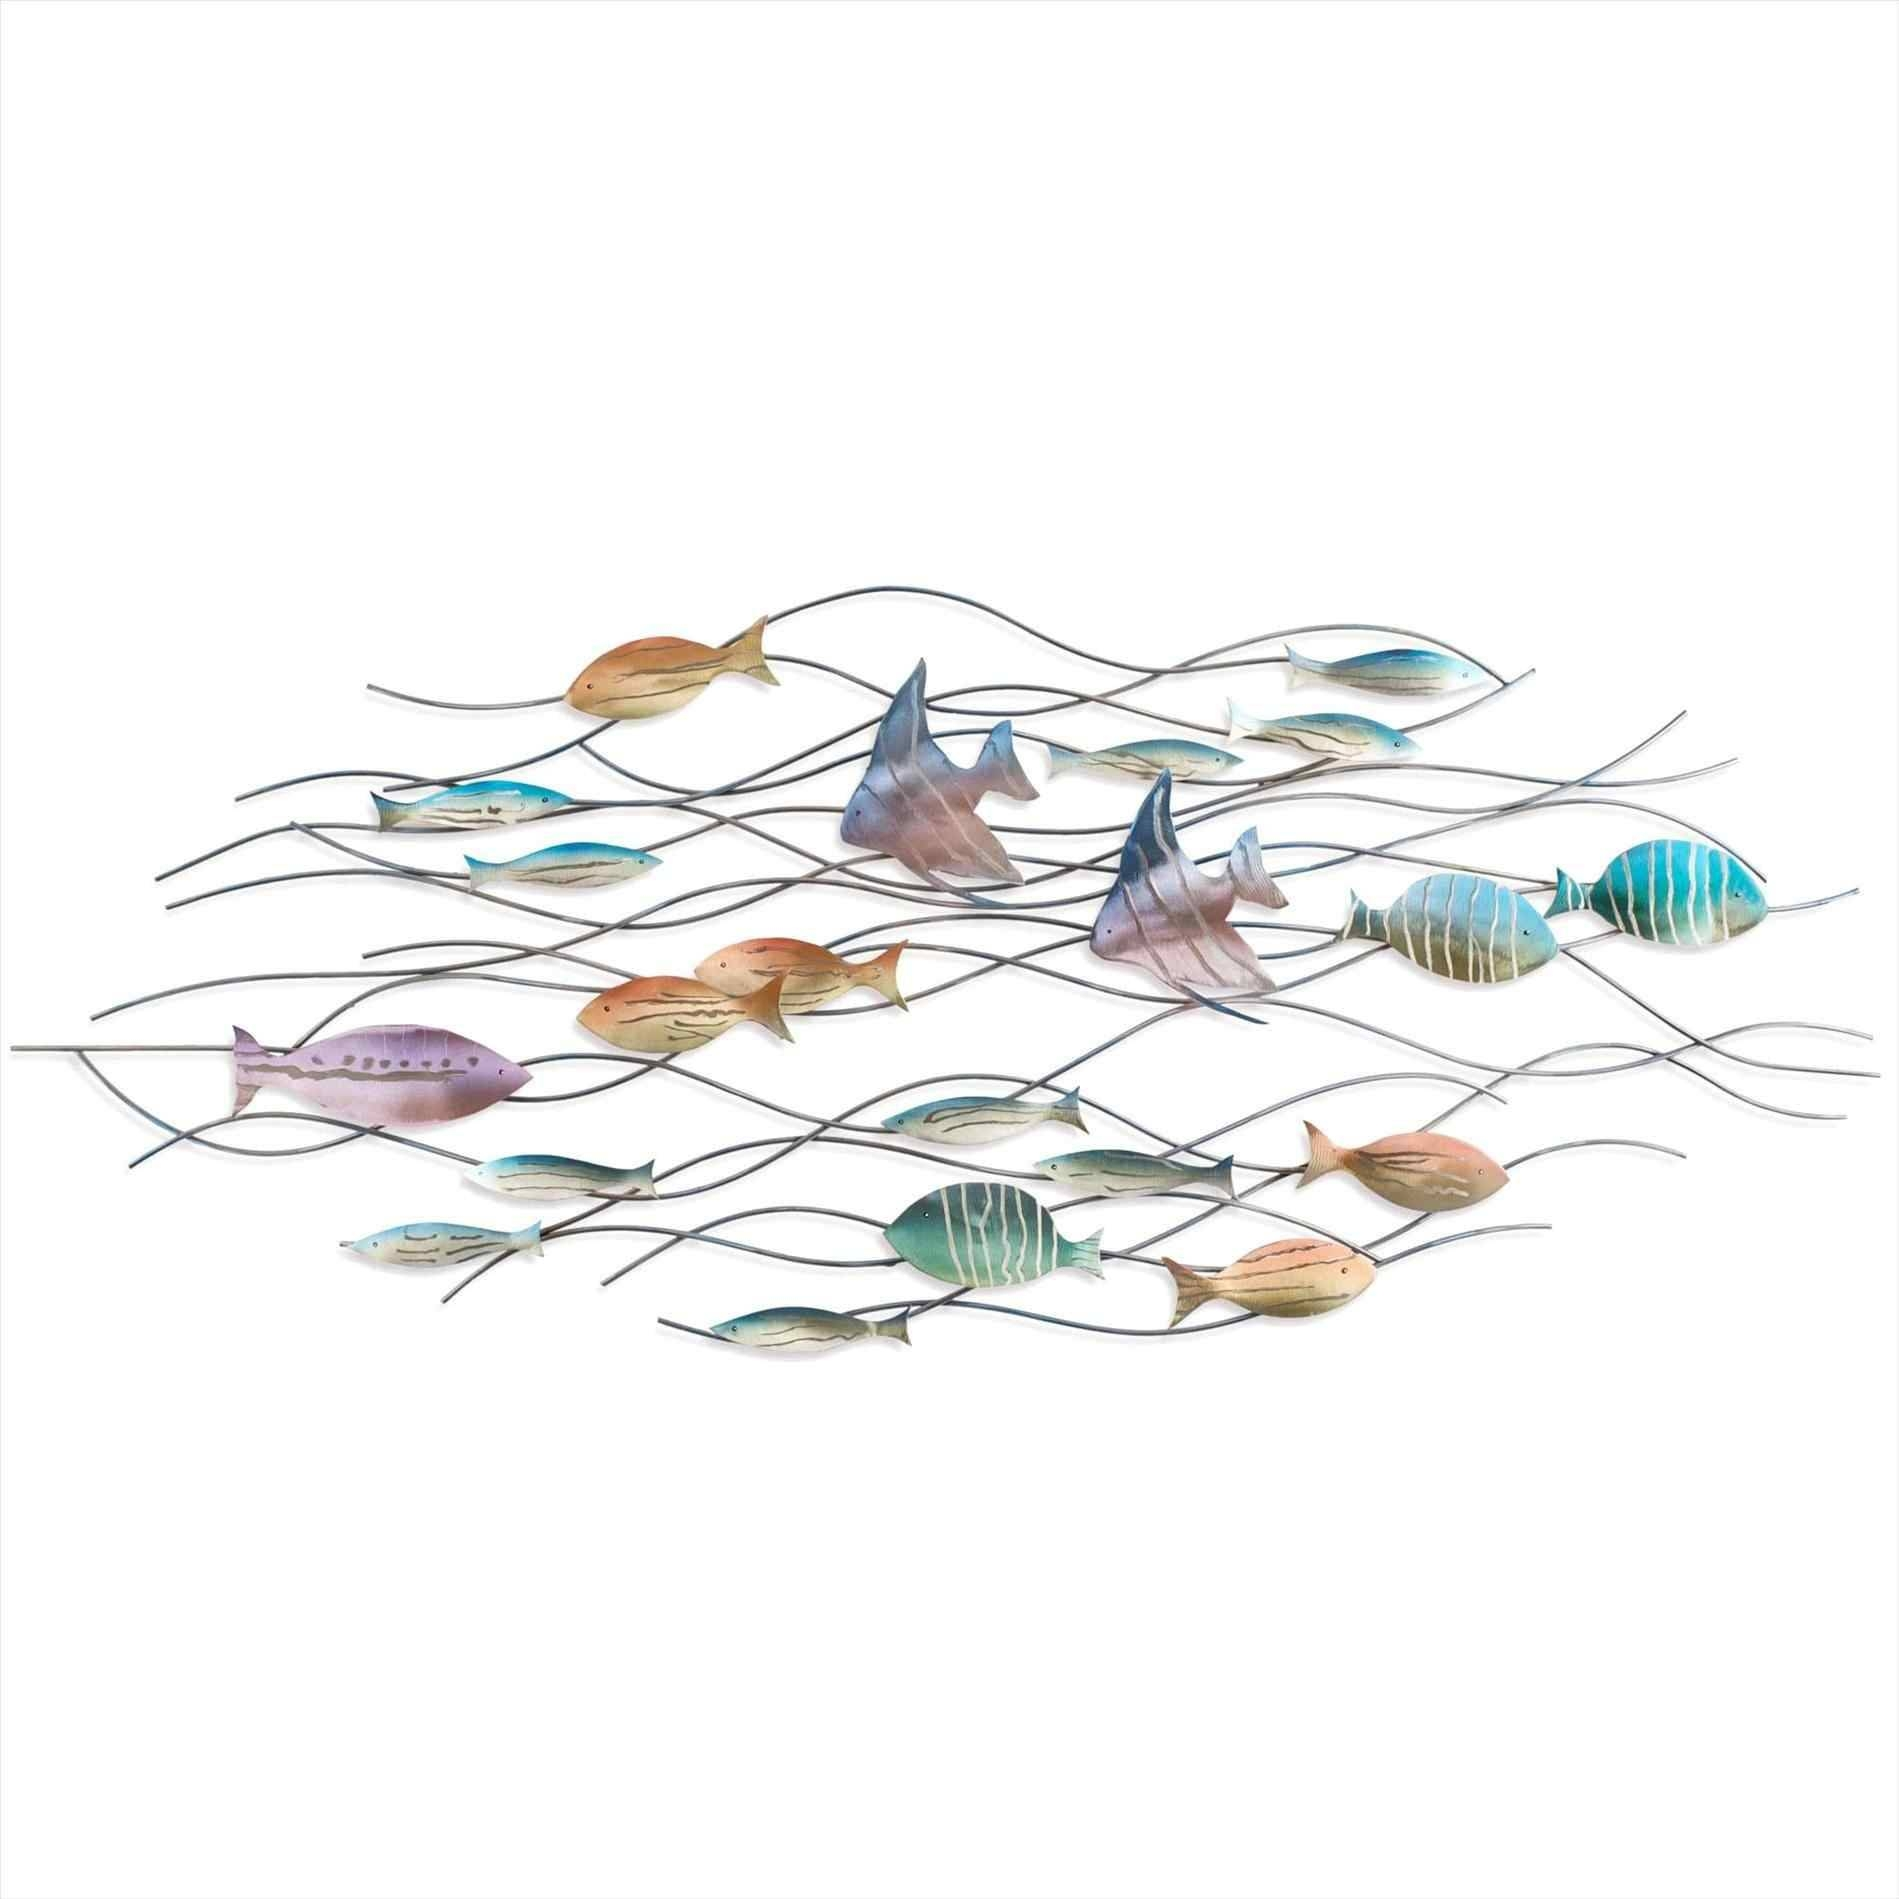 Metal Fish Wall Art New Zealand Ocean Gems Decor Bronze Design Uk Pertaining To Latest New Zealand Metal Wall Art (View 6 of 20)